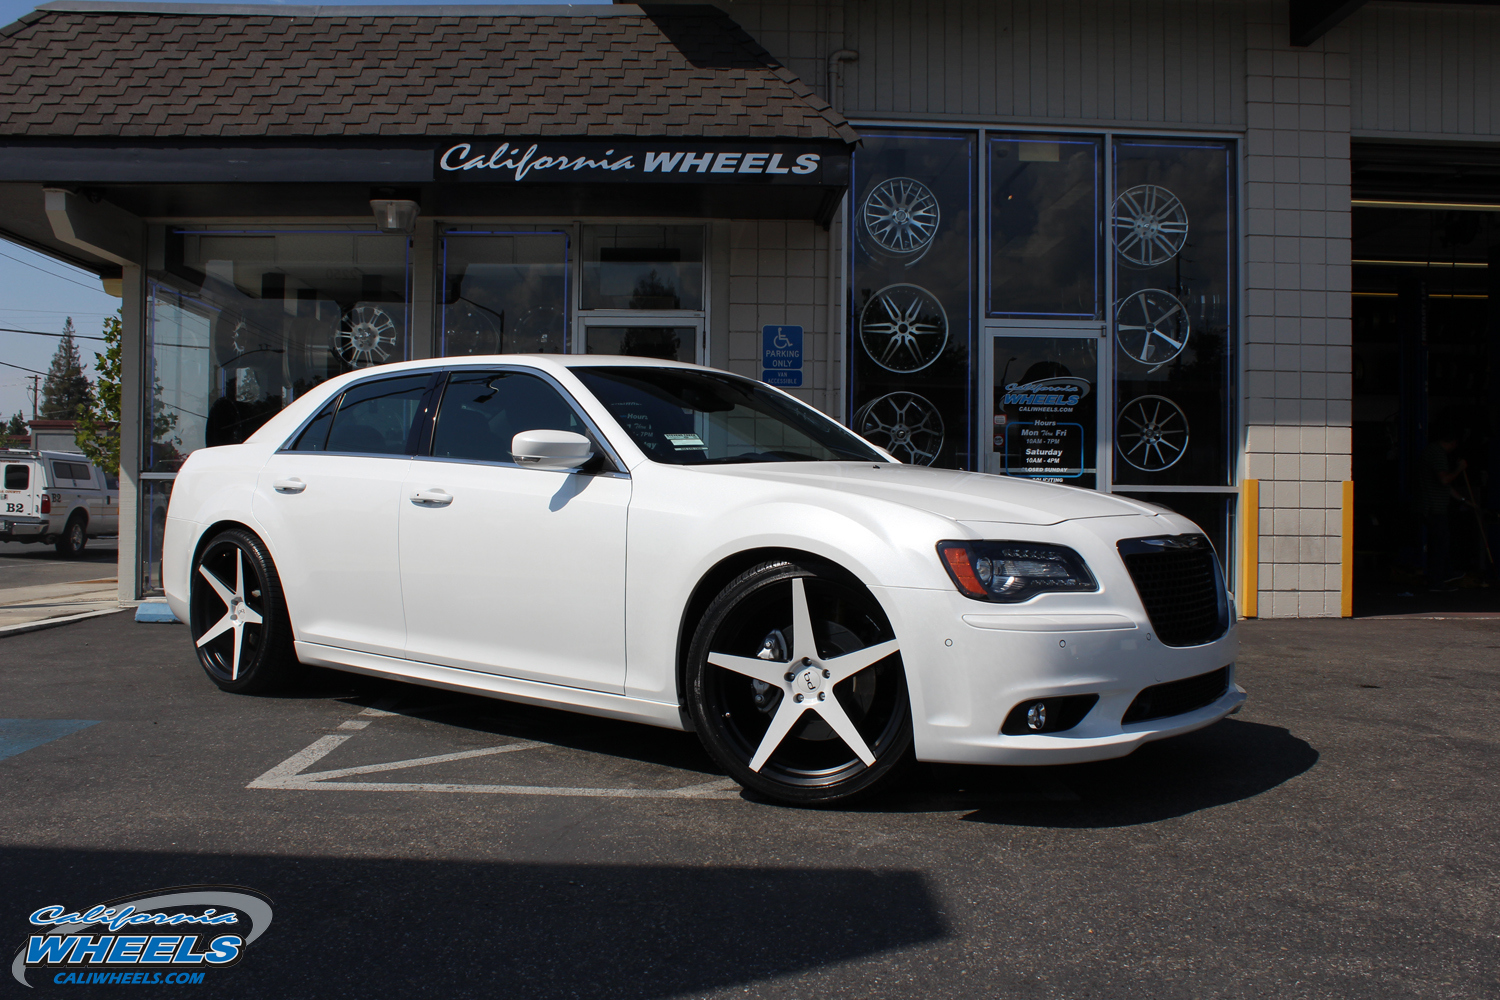 car chrysler 300 on wheels california wheels. Black Bedroom Furniture Sets. Home Design Ideas